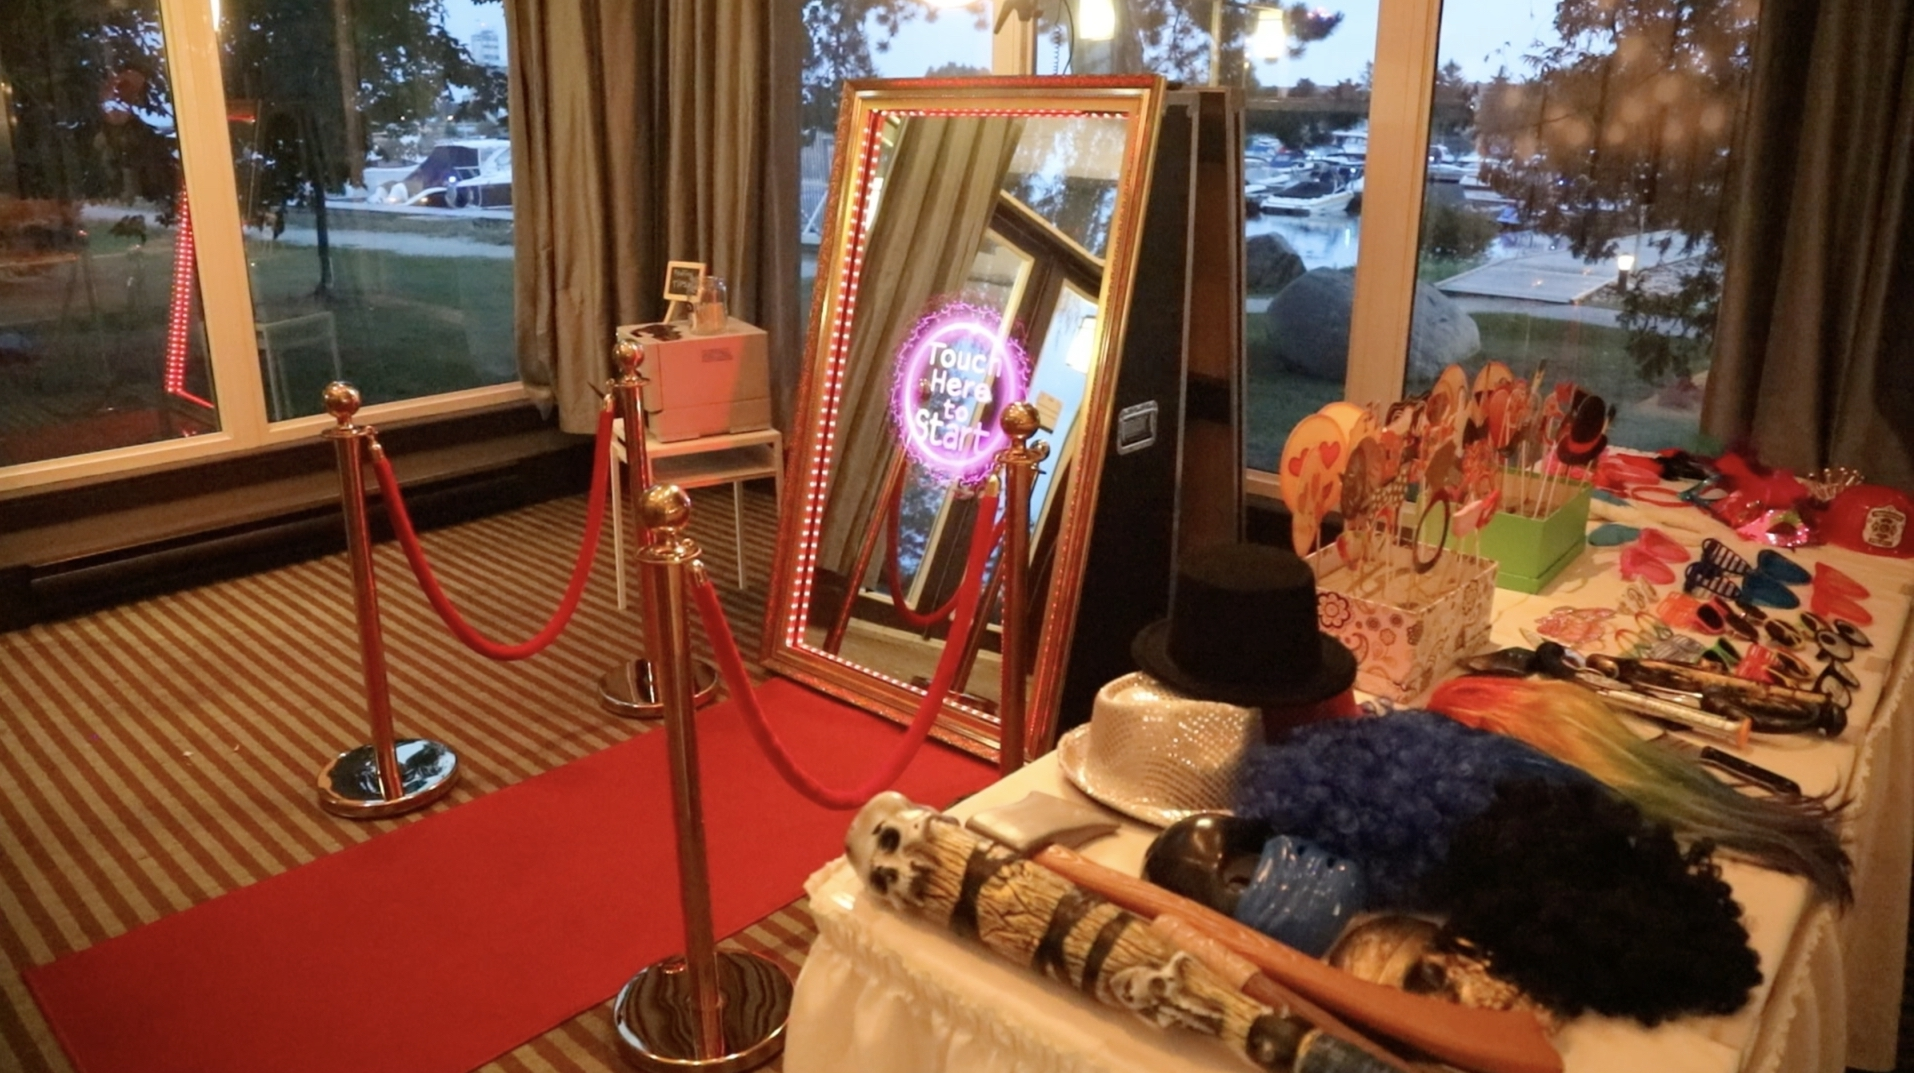 Mirror Photo Booth Rental Company in Tomball, Tx